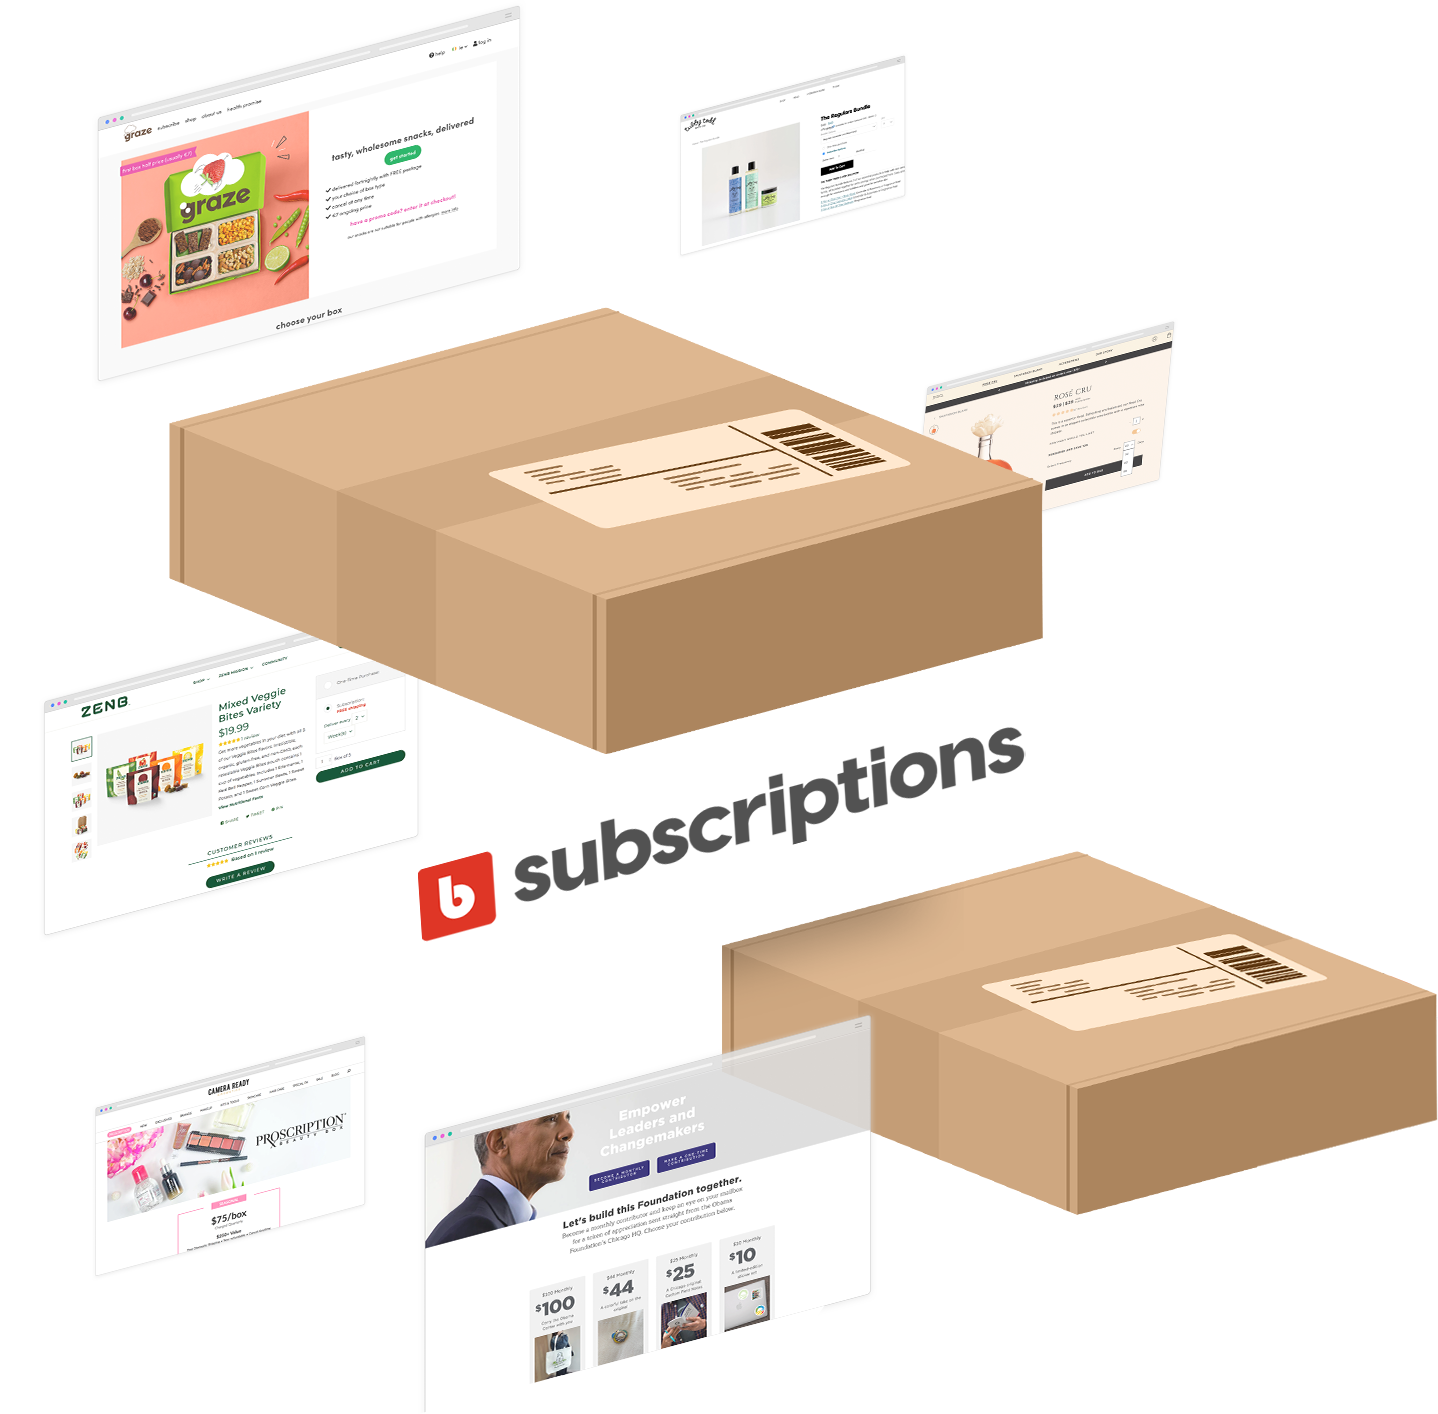 Subscriptions logo surrounded by boxes and store webpages